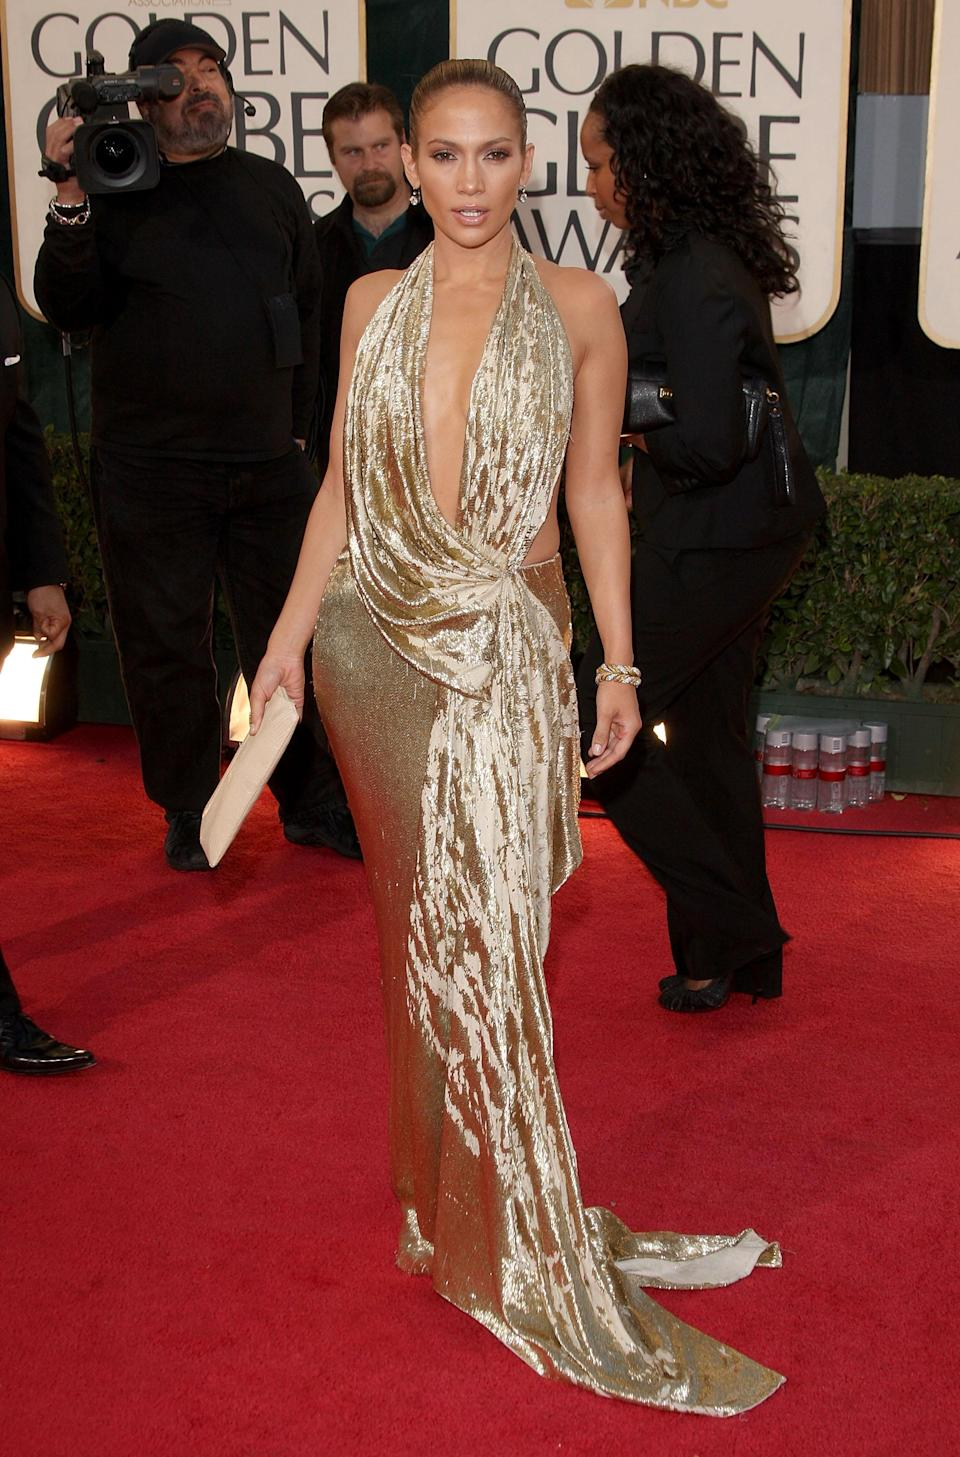 <p>Another plunging neckline in a sequins wrap dress, J.Lo continued to show off her hard work with this revealing piece. [Photo: Getty] </p>